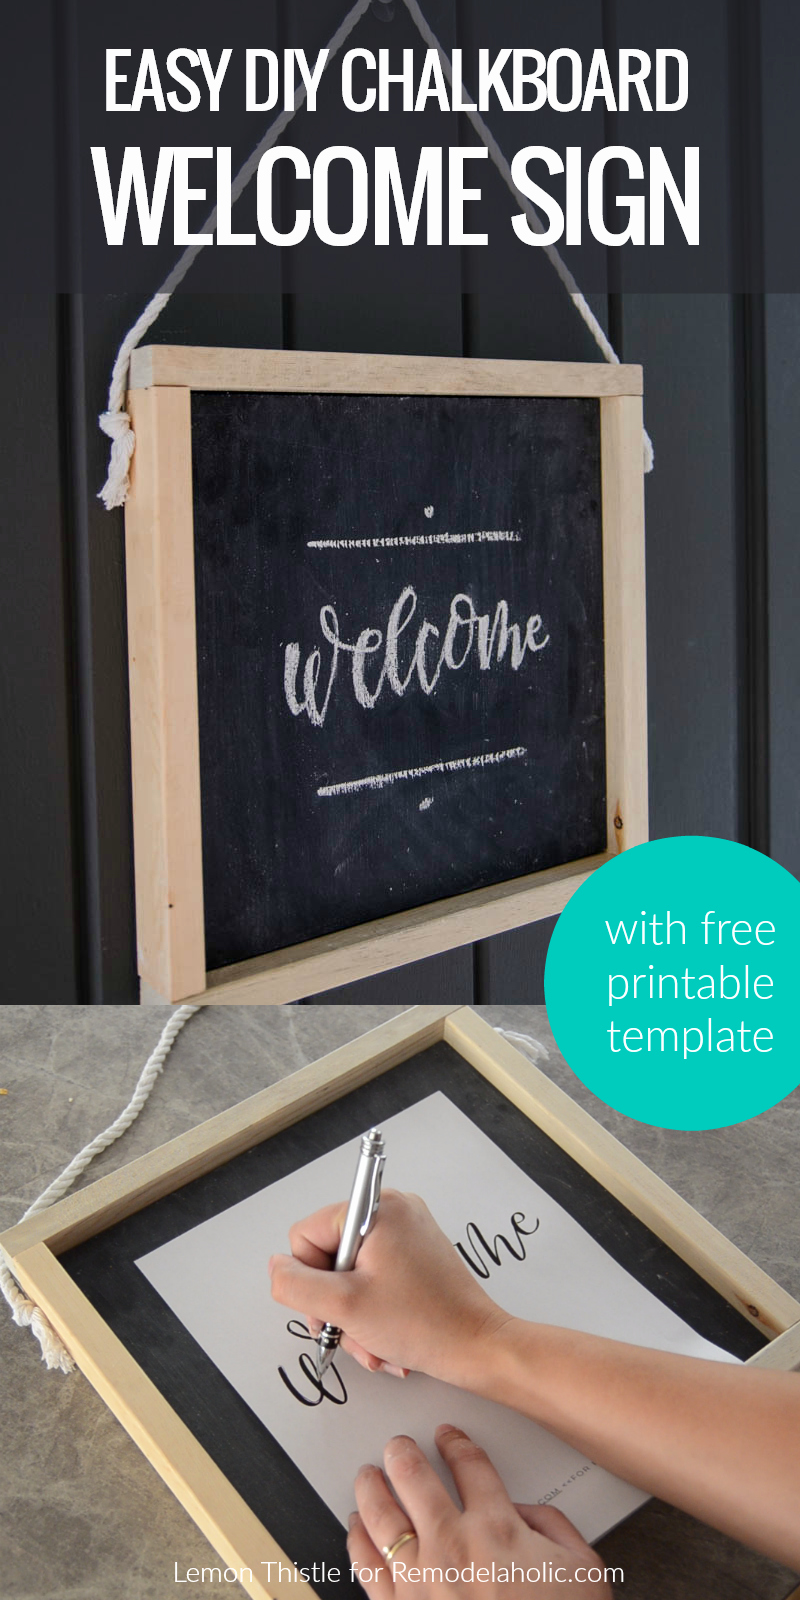 Free Printable Sign Templates Inspirational Remodelaholic